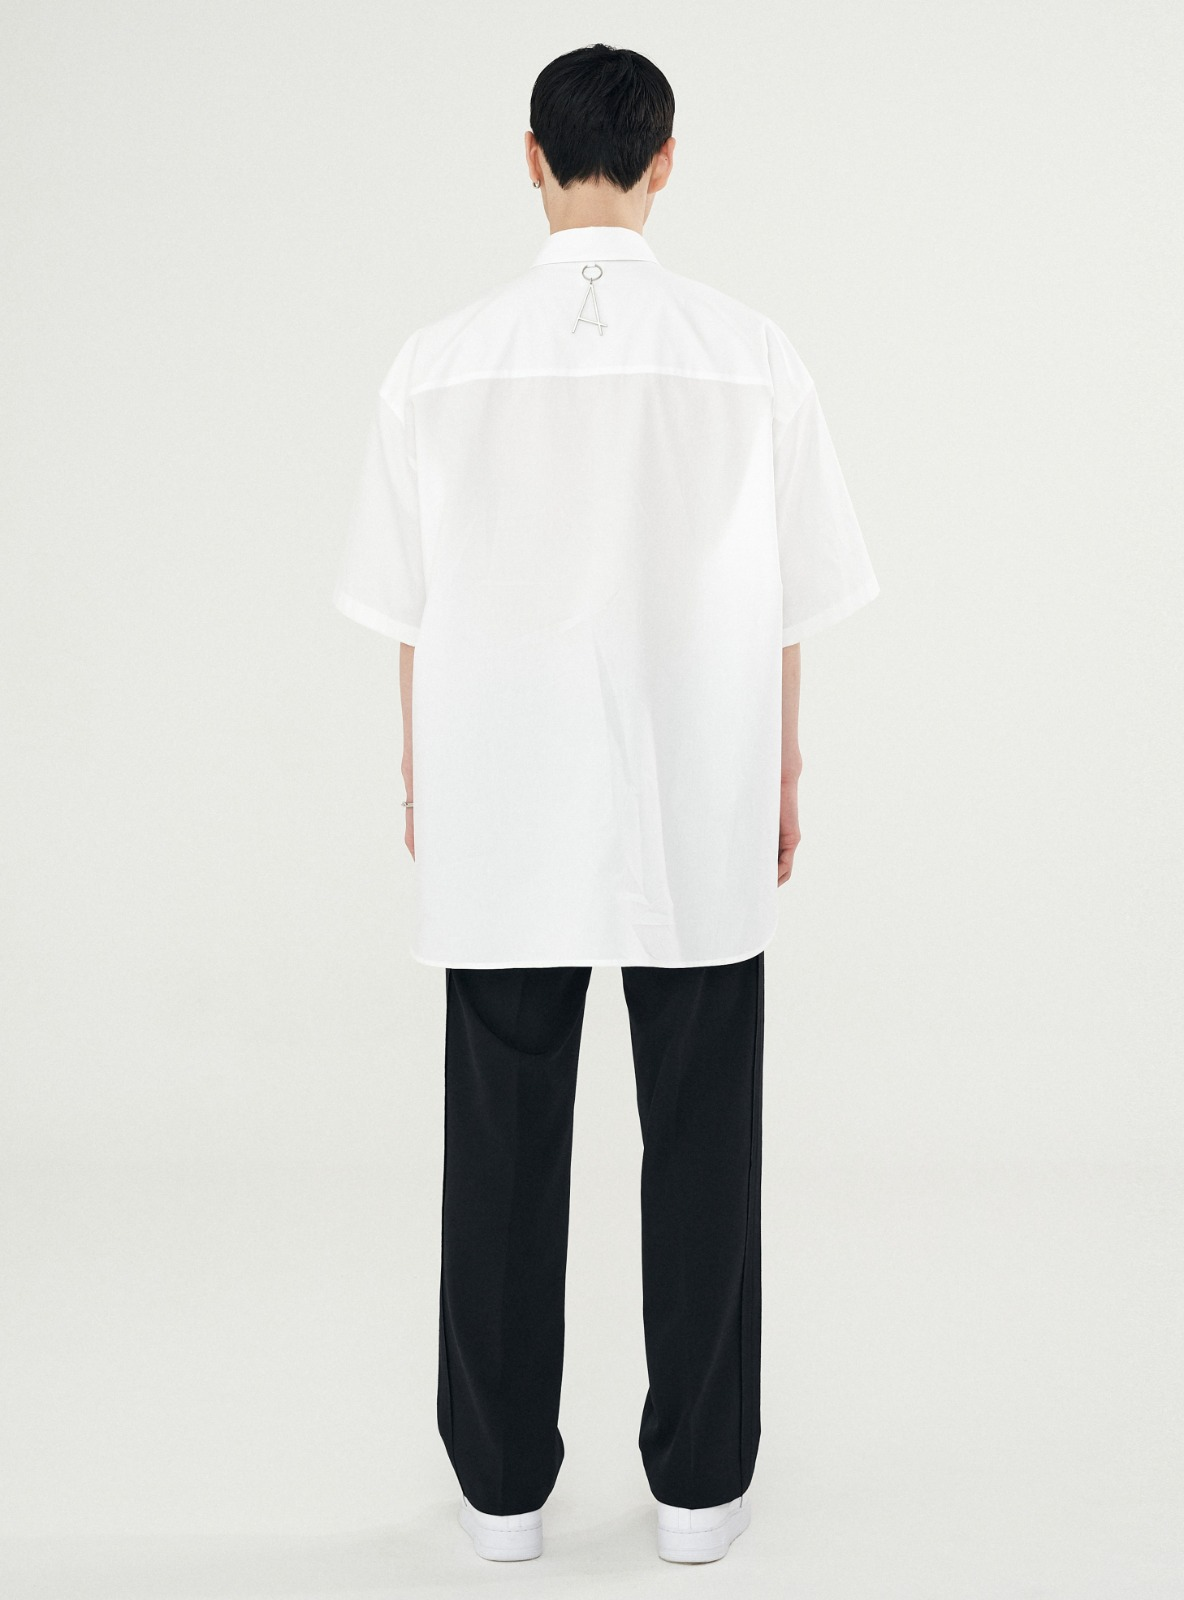 ADDITUDE No.4 AVANTGARDE SHIRT WHITE